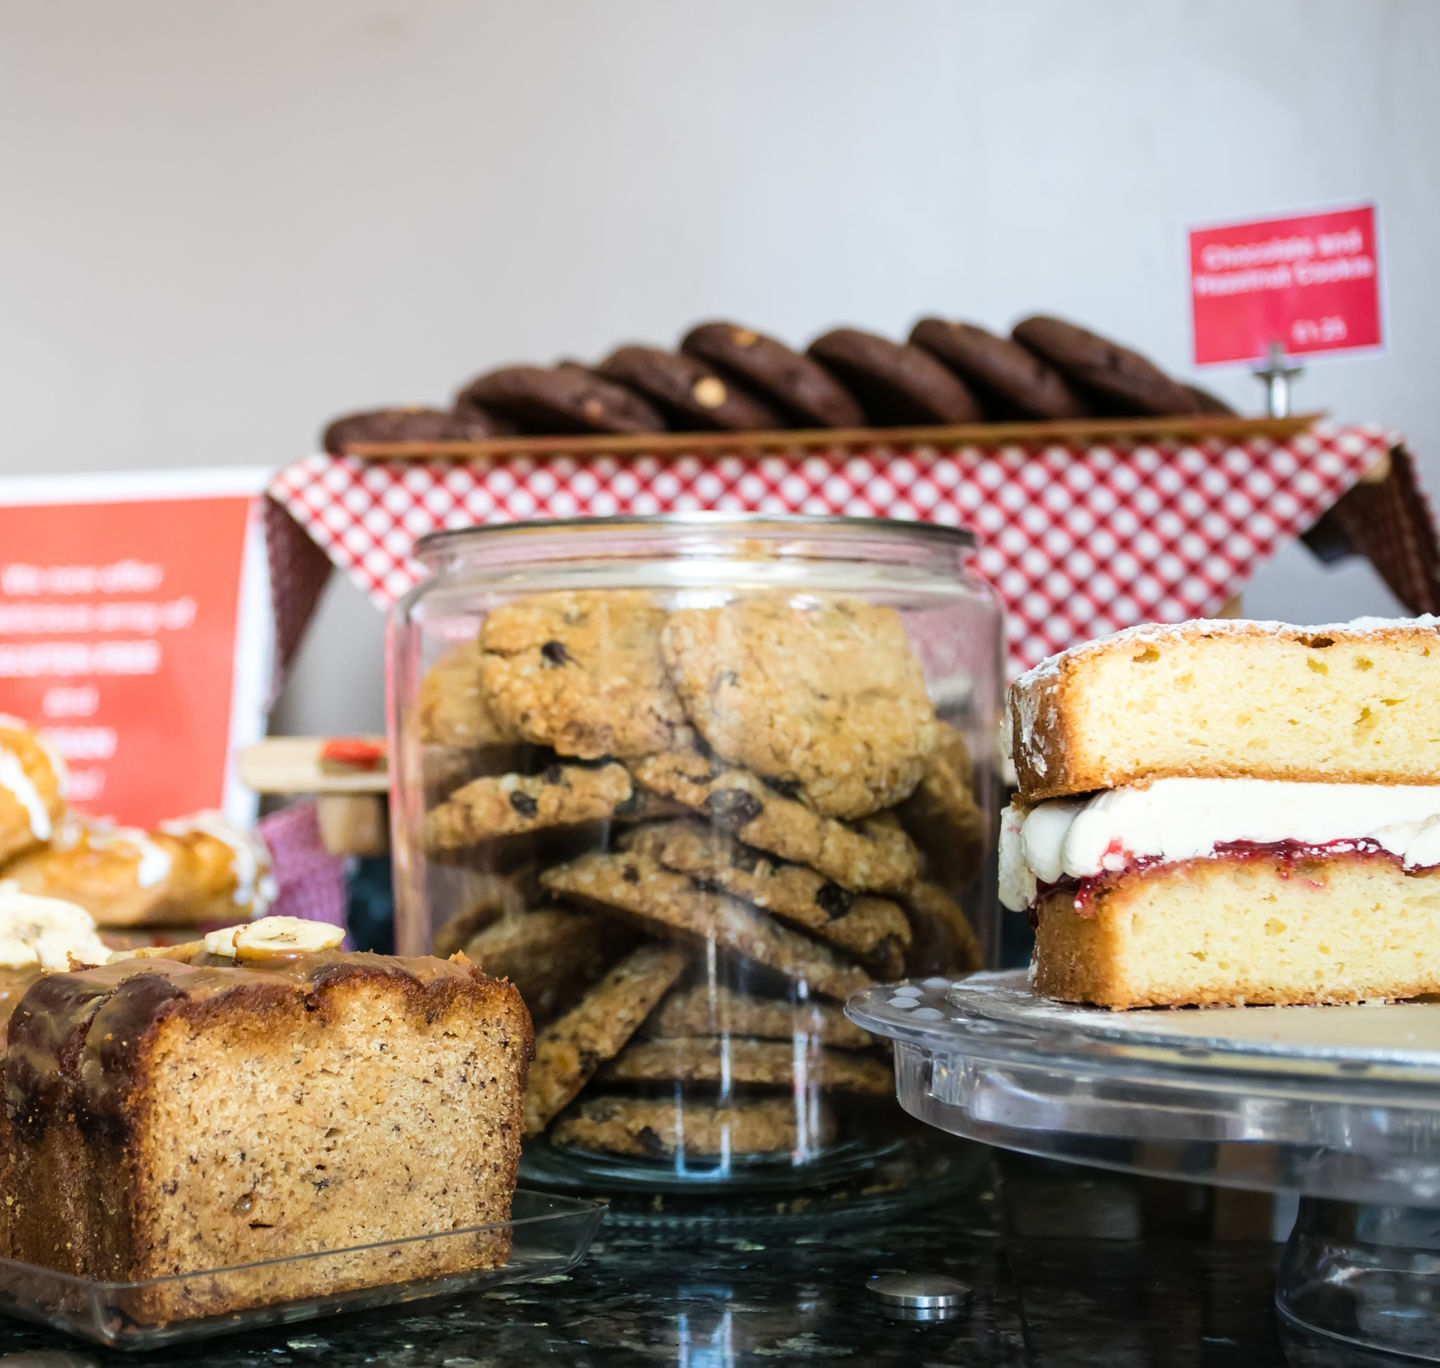 Gluten free cakes and bakes